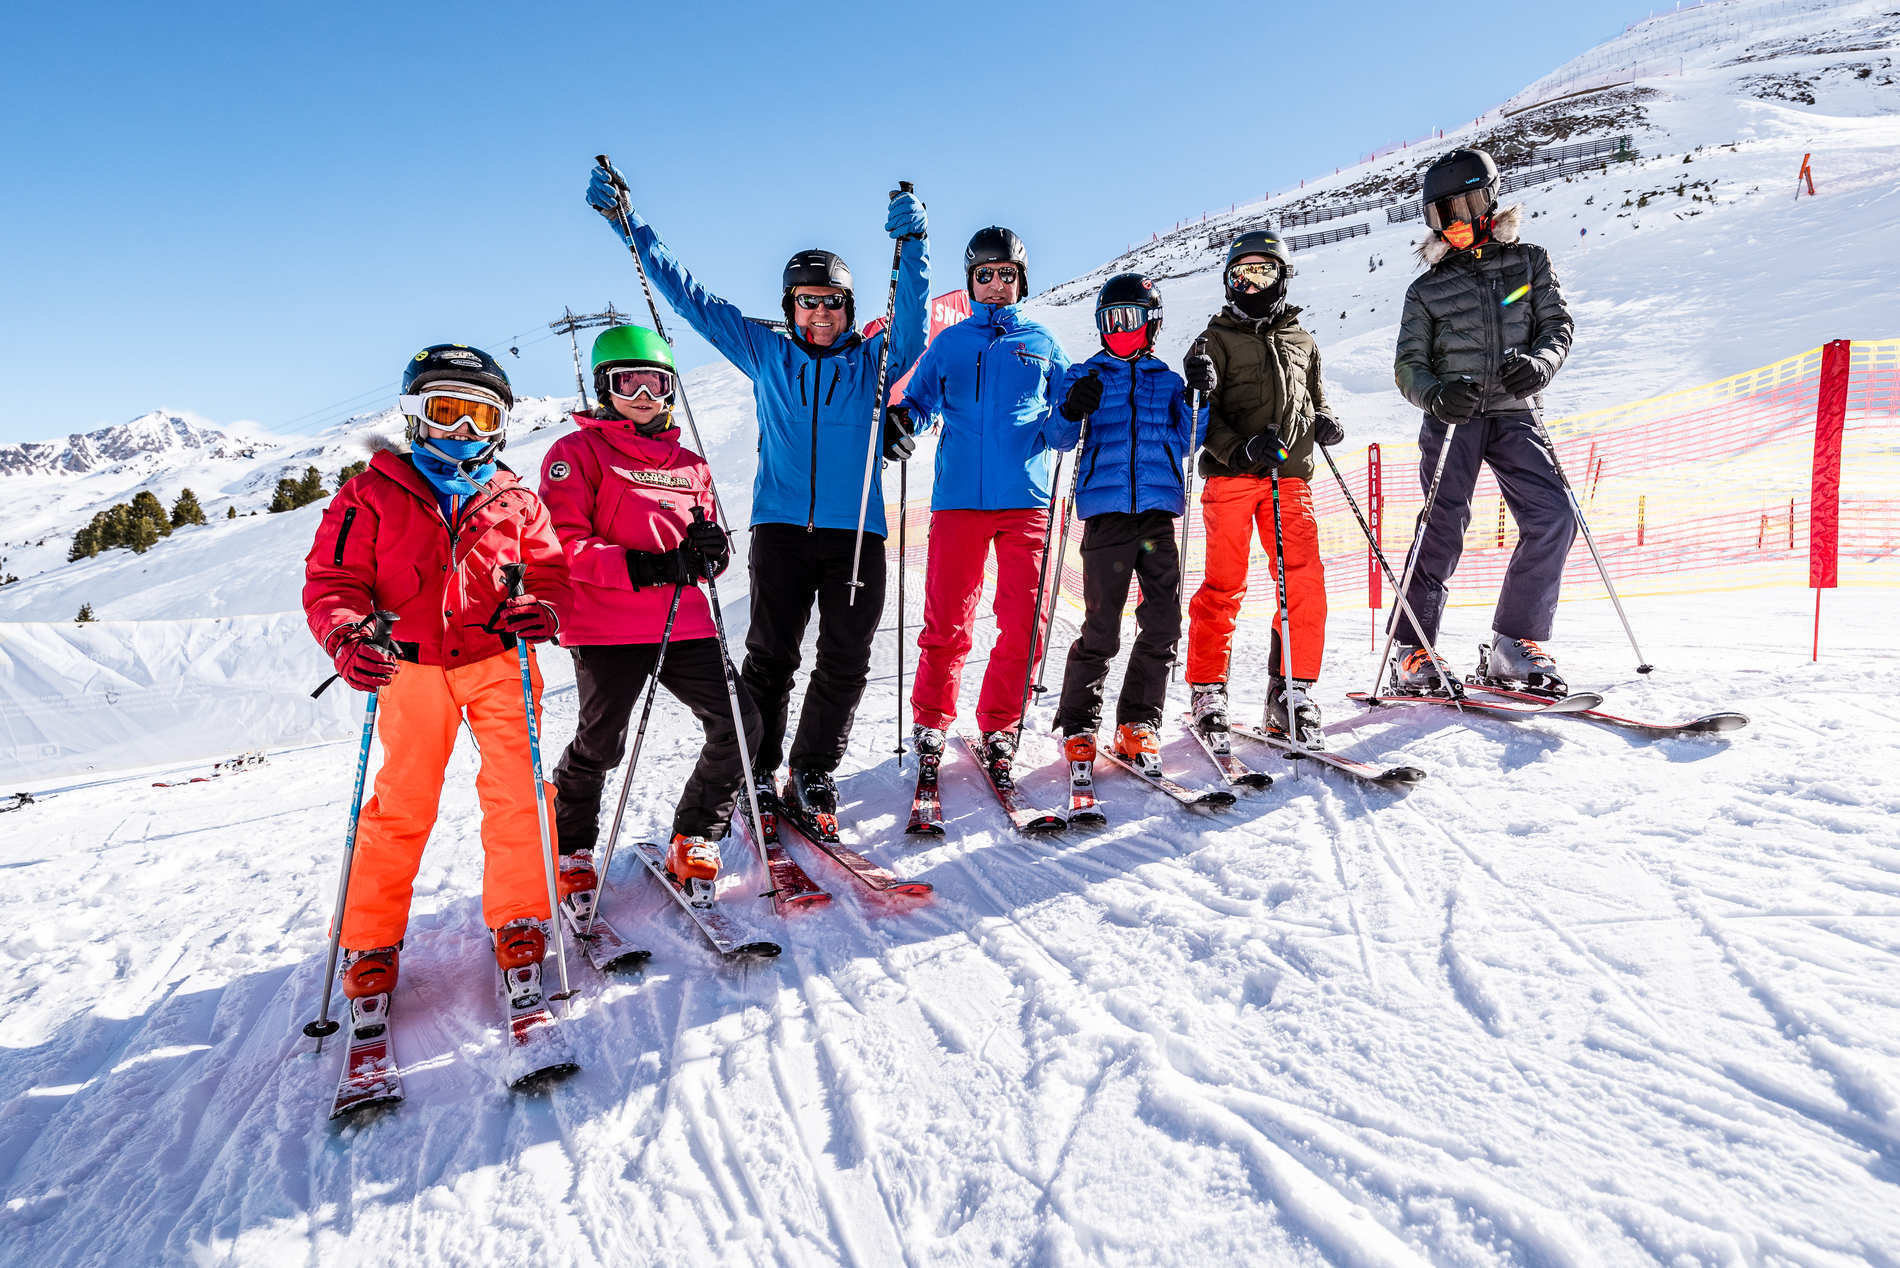 web obergurgl 08 03 2019 lifestyle fs sb christian riefenberg qparks 19